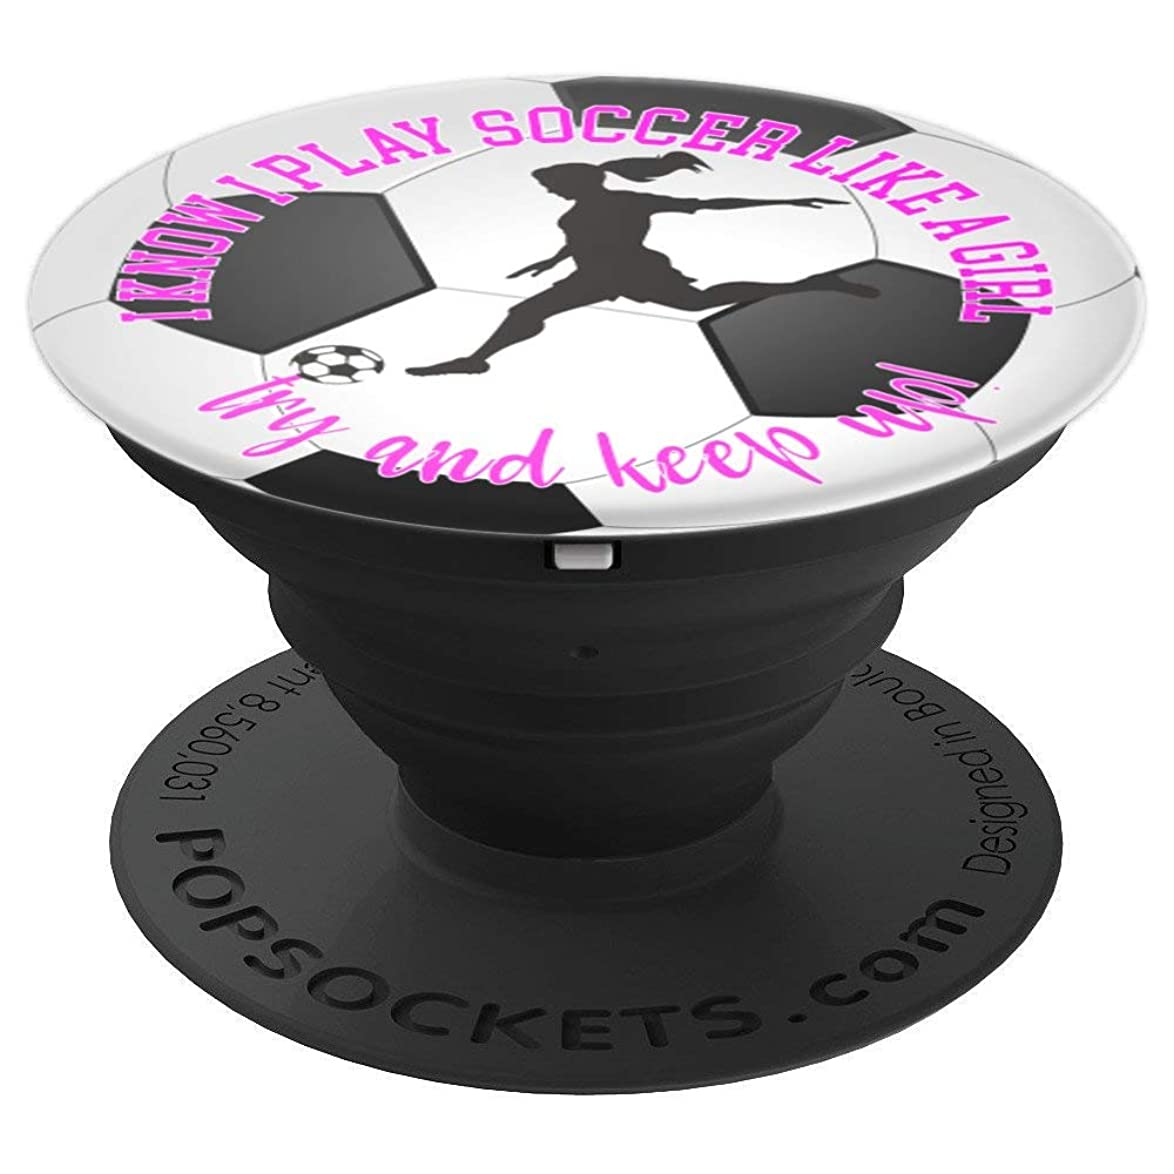 I know I play soccer like a girl try and keep up - PopSockets Grip and Stand for Phones and Tablets urwnyysgkvveqzm1